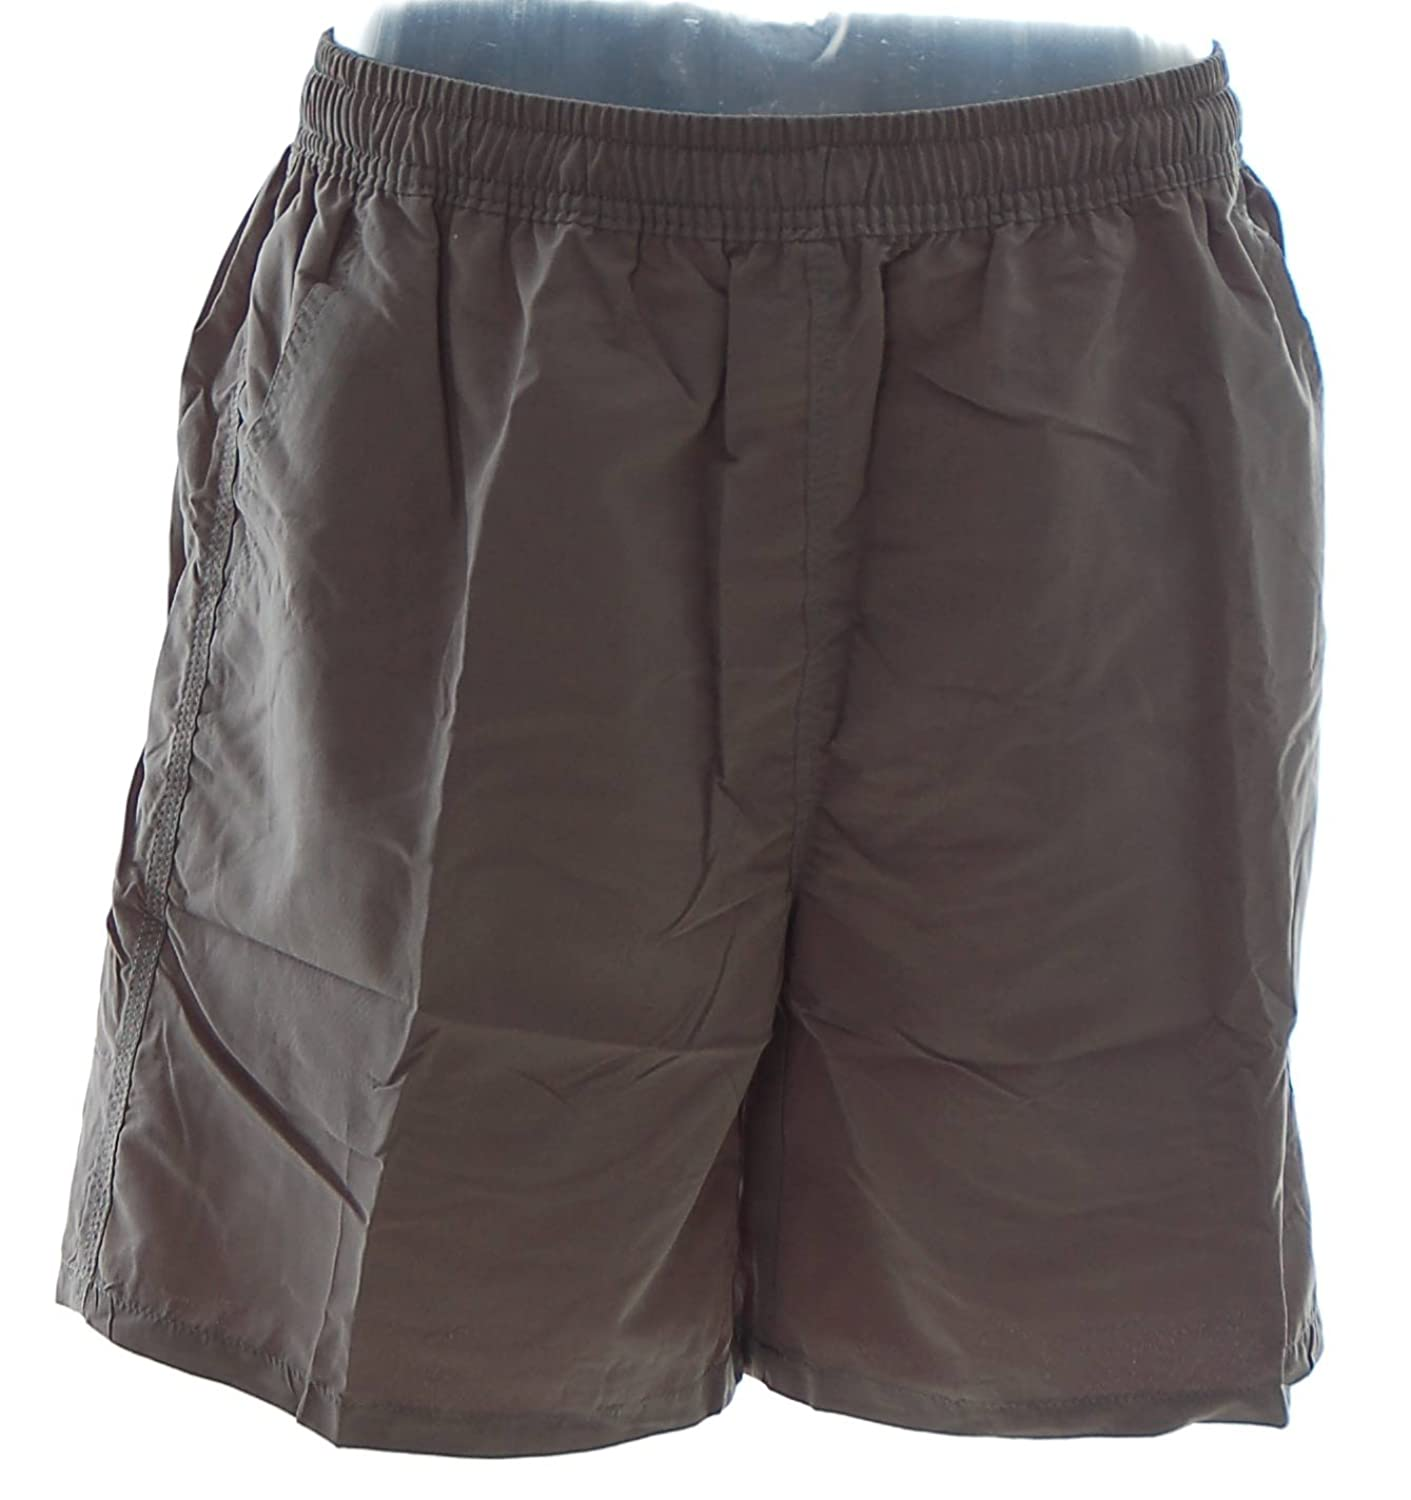 Shiwi ? Strandshorts Shorts Swimming Swim Shorts